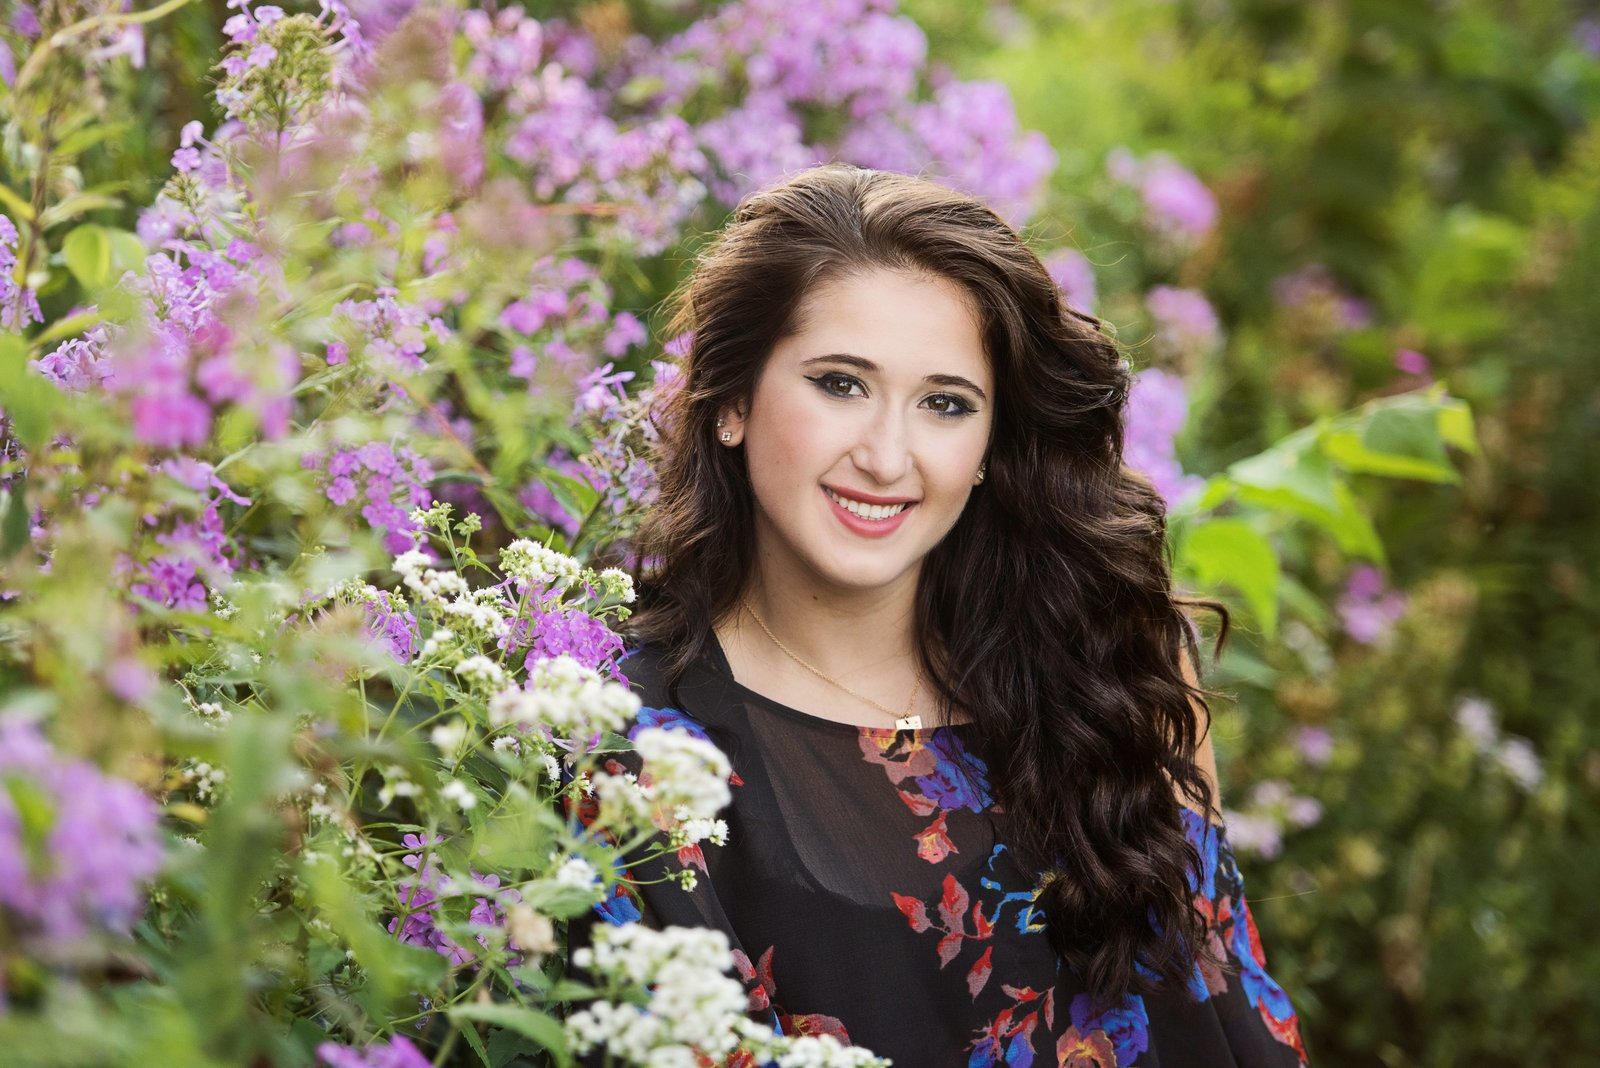 Senior picture of brunette girl with purple flowers